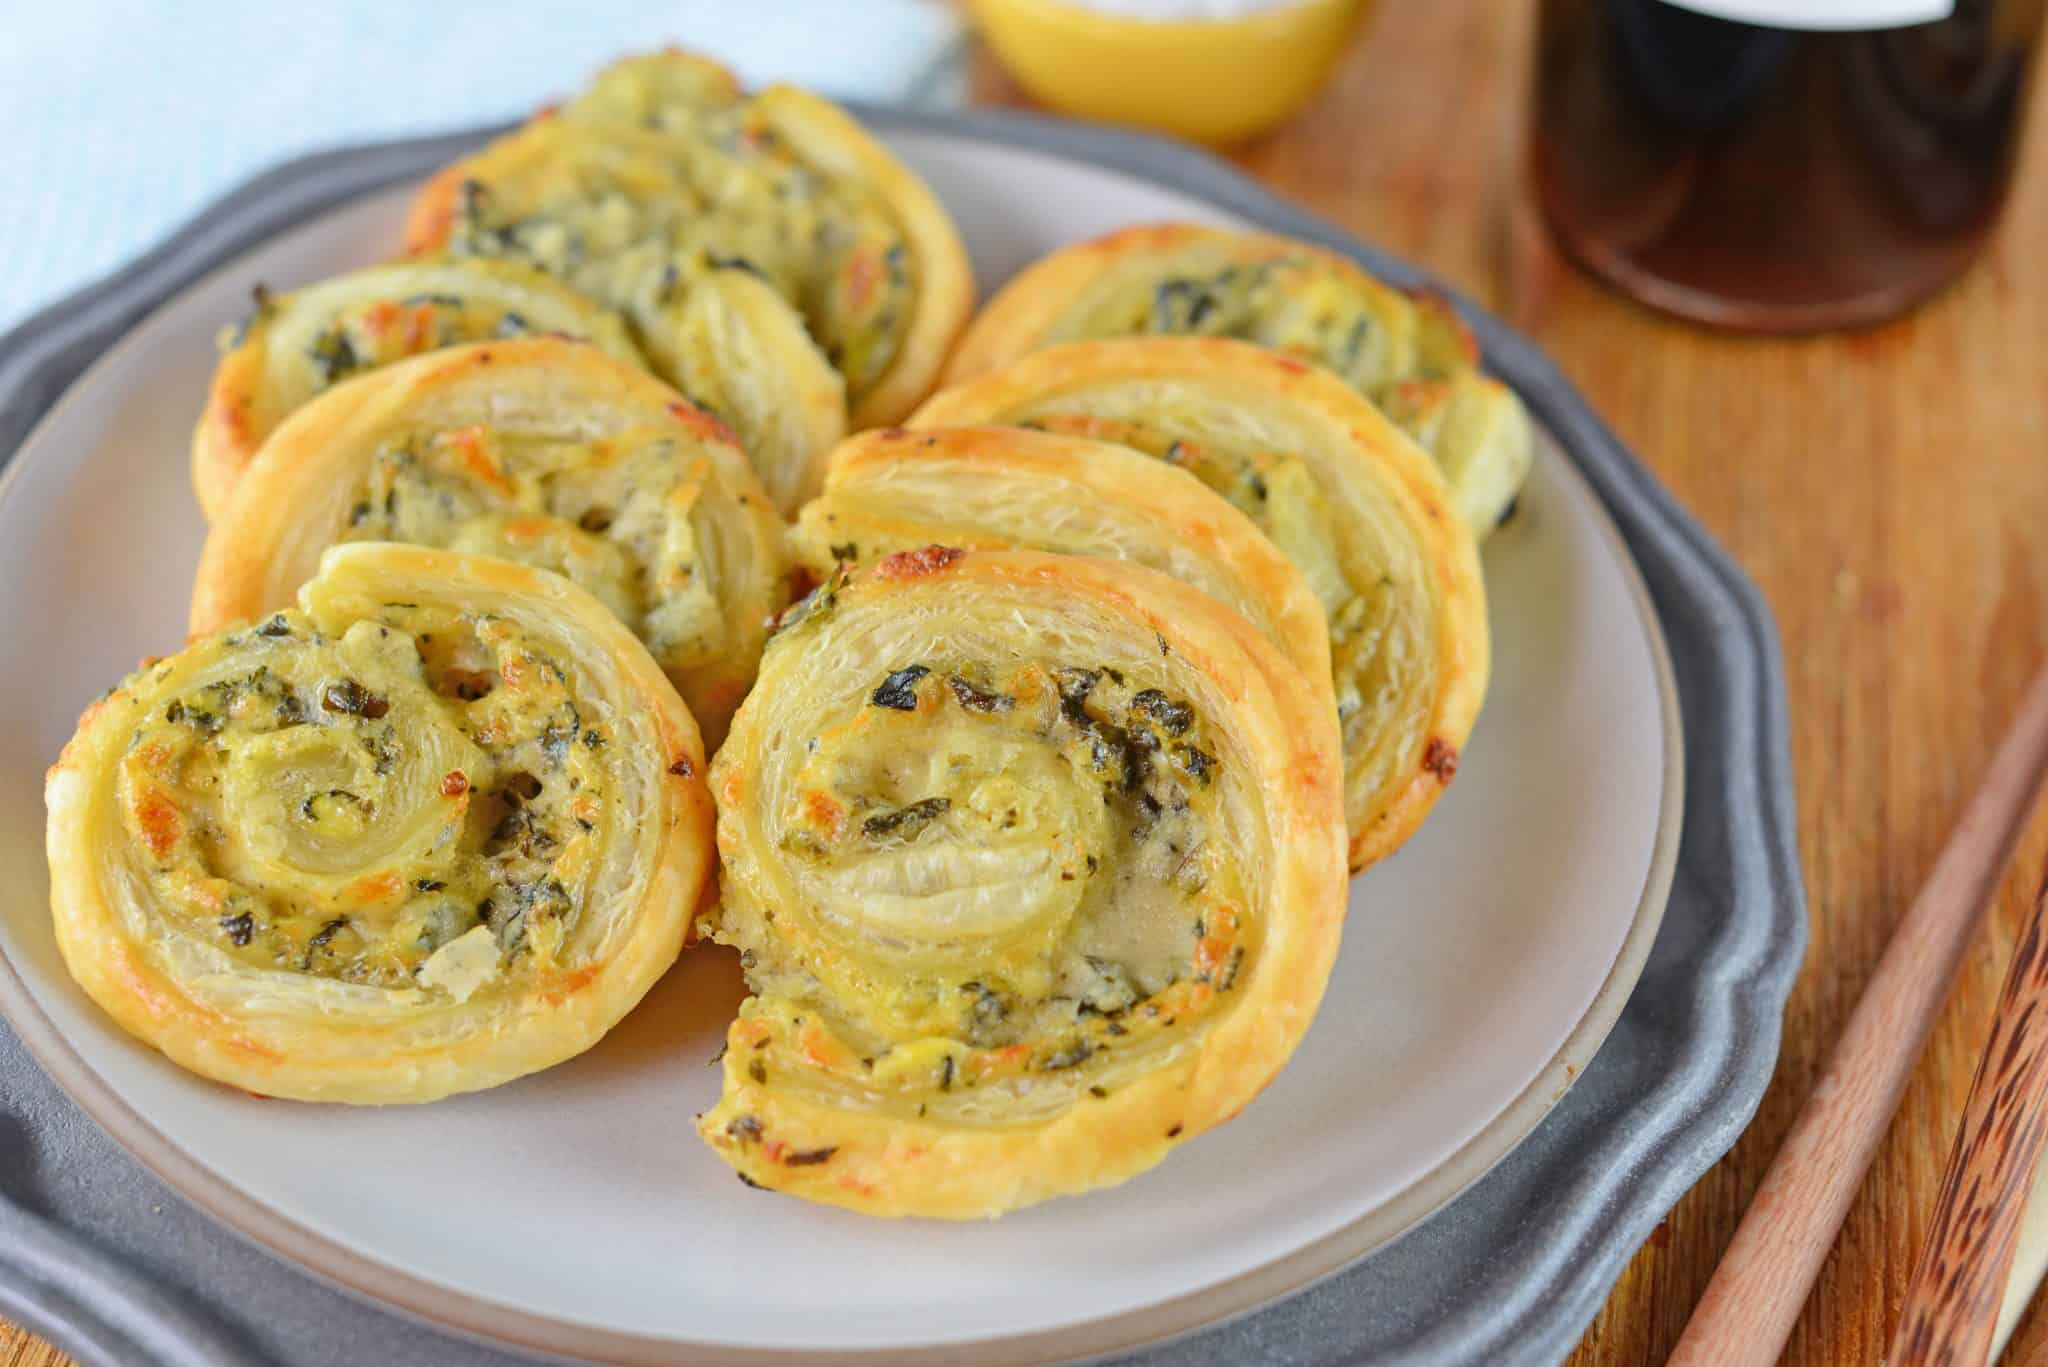 Spinach and artichoke pinwheel recipes stacked on a plate